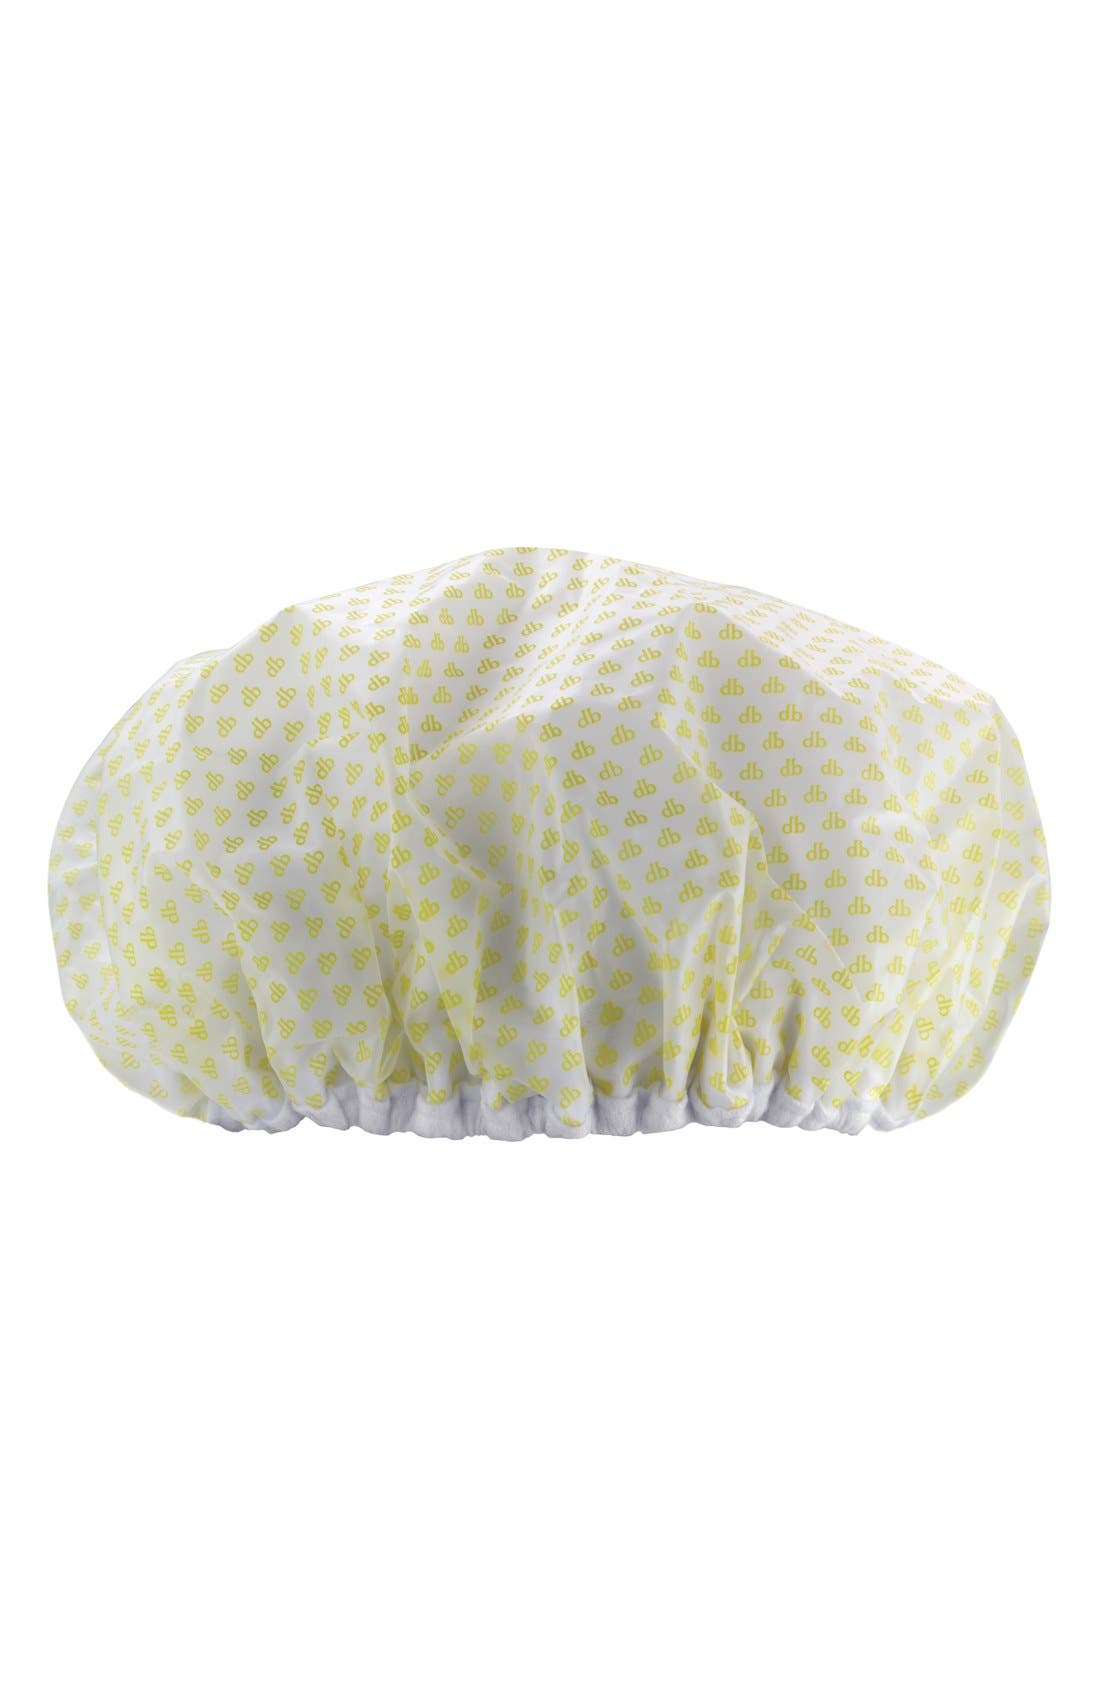 The Morning After Shower Cap